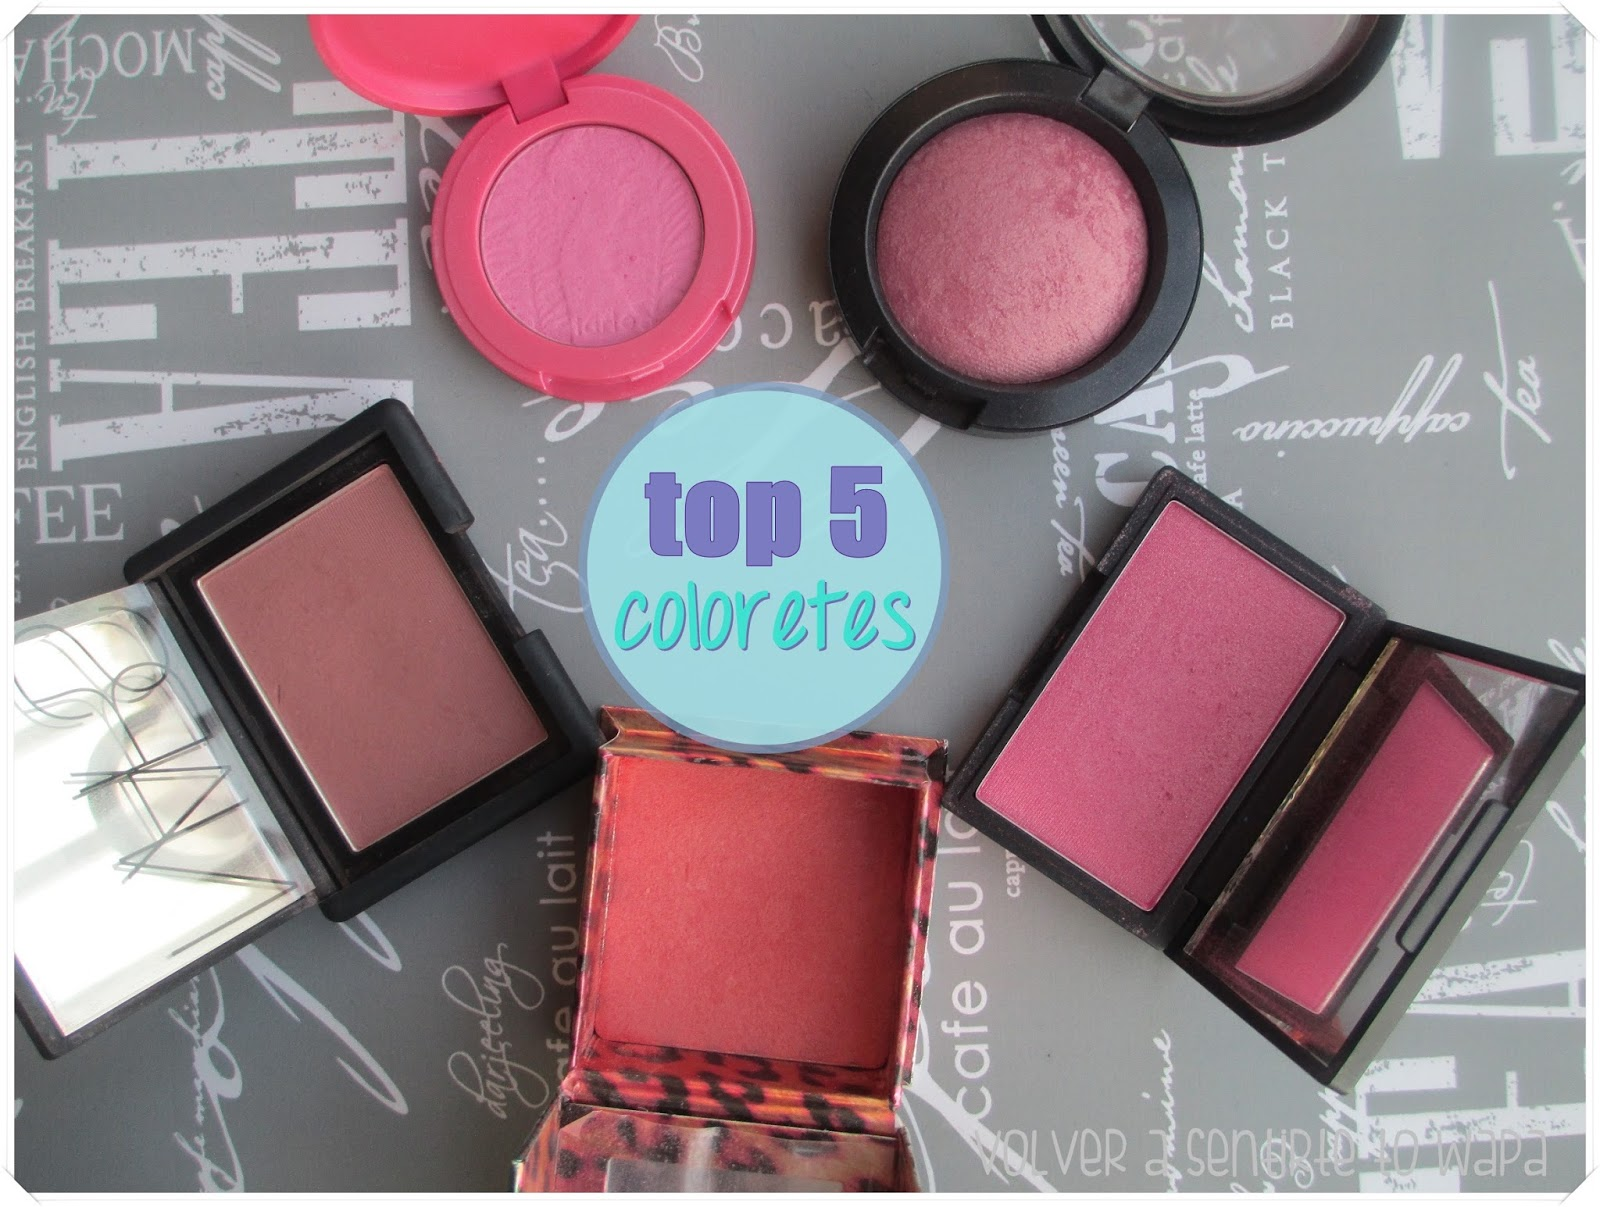 TOP 5: Coloretes {mis favoritos} - Tarte - Nars - Sleek - Benefit - MAC